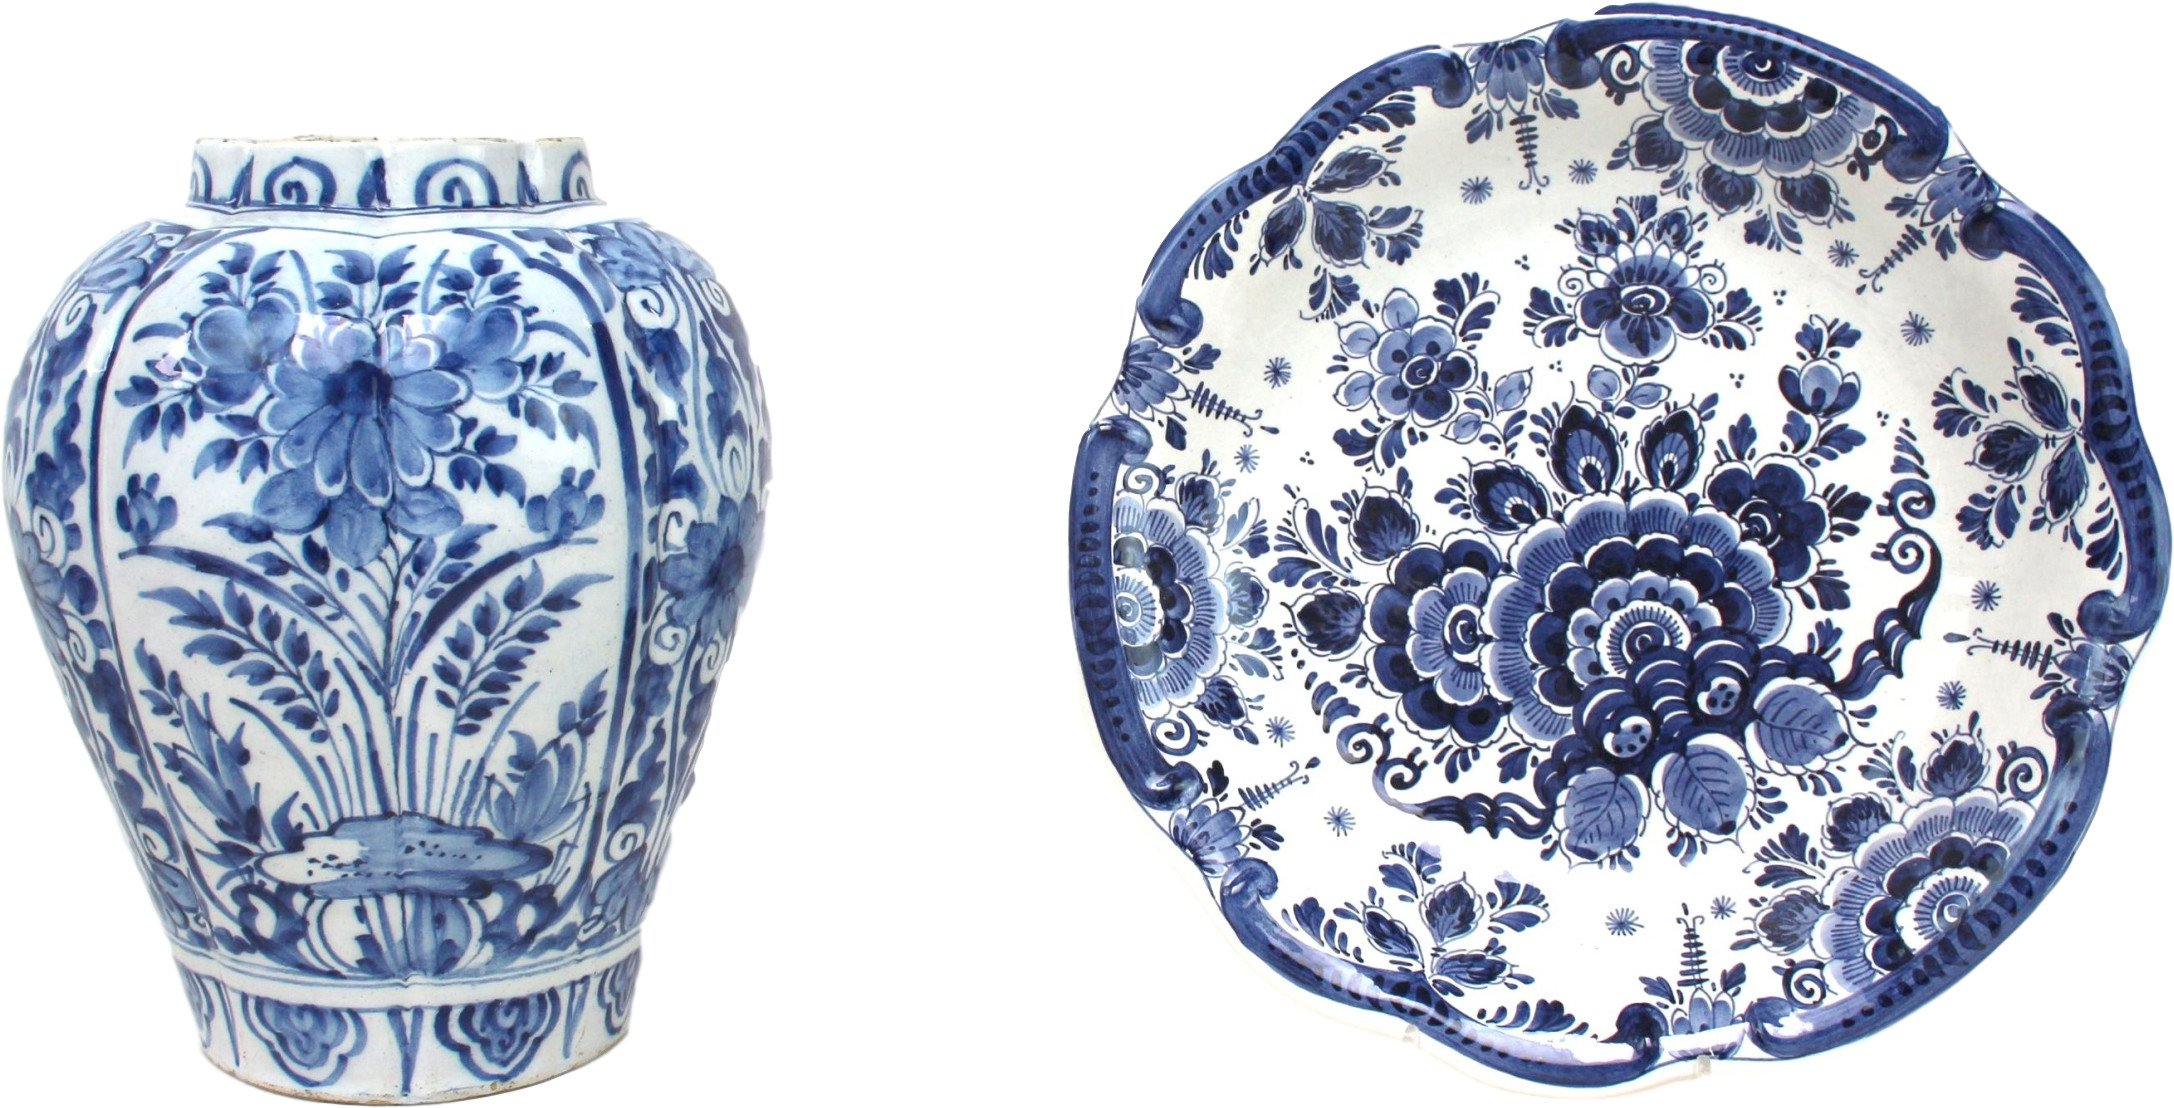 Vase and Plate, Dutch Delft, Netherlands, early 20th C.